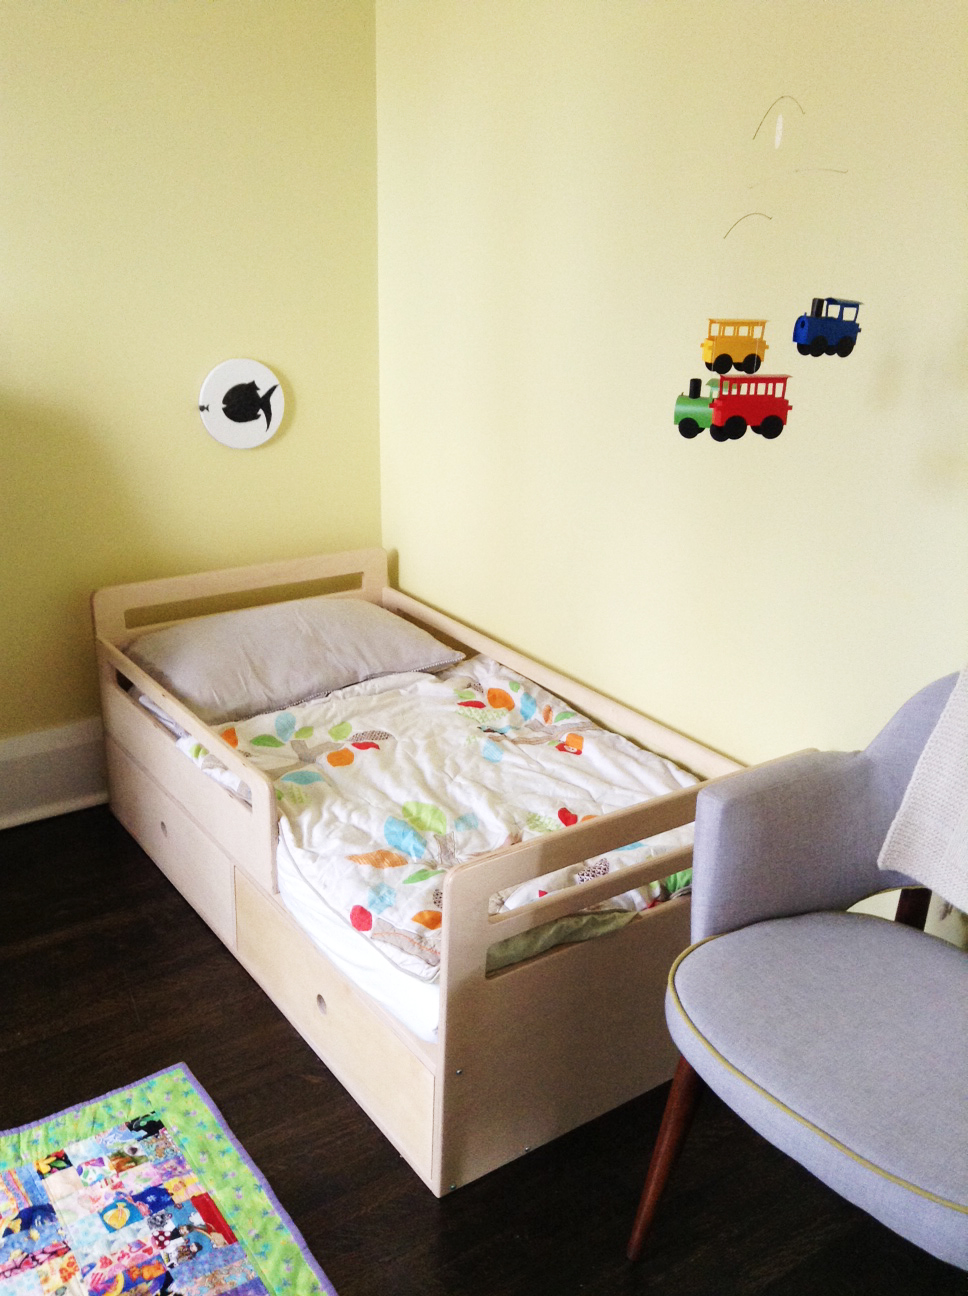 It was this bed that made our two year old transit over from the crib.  Cute, isn't?